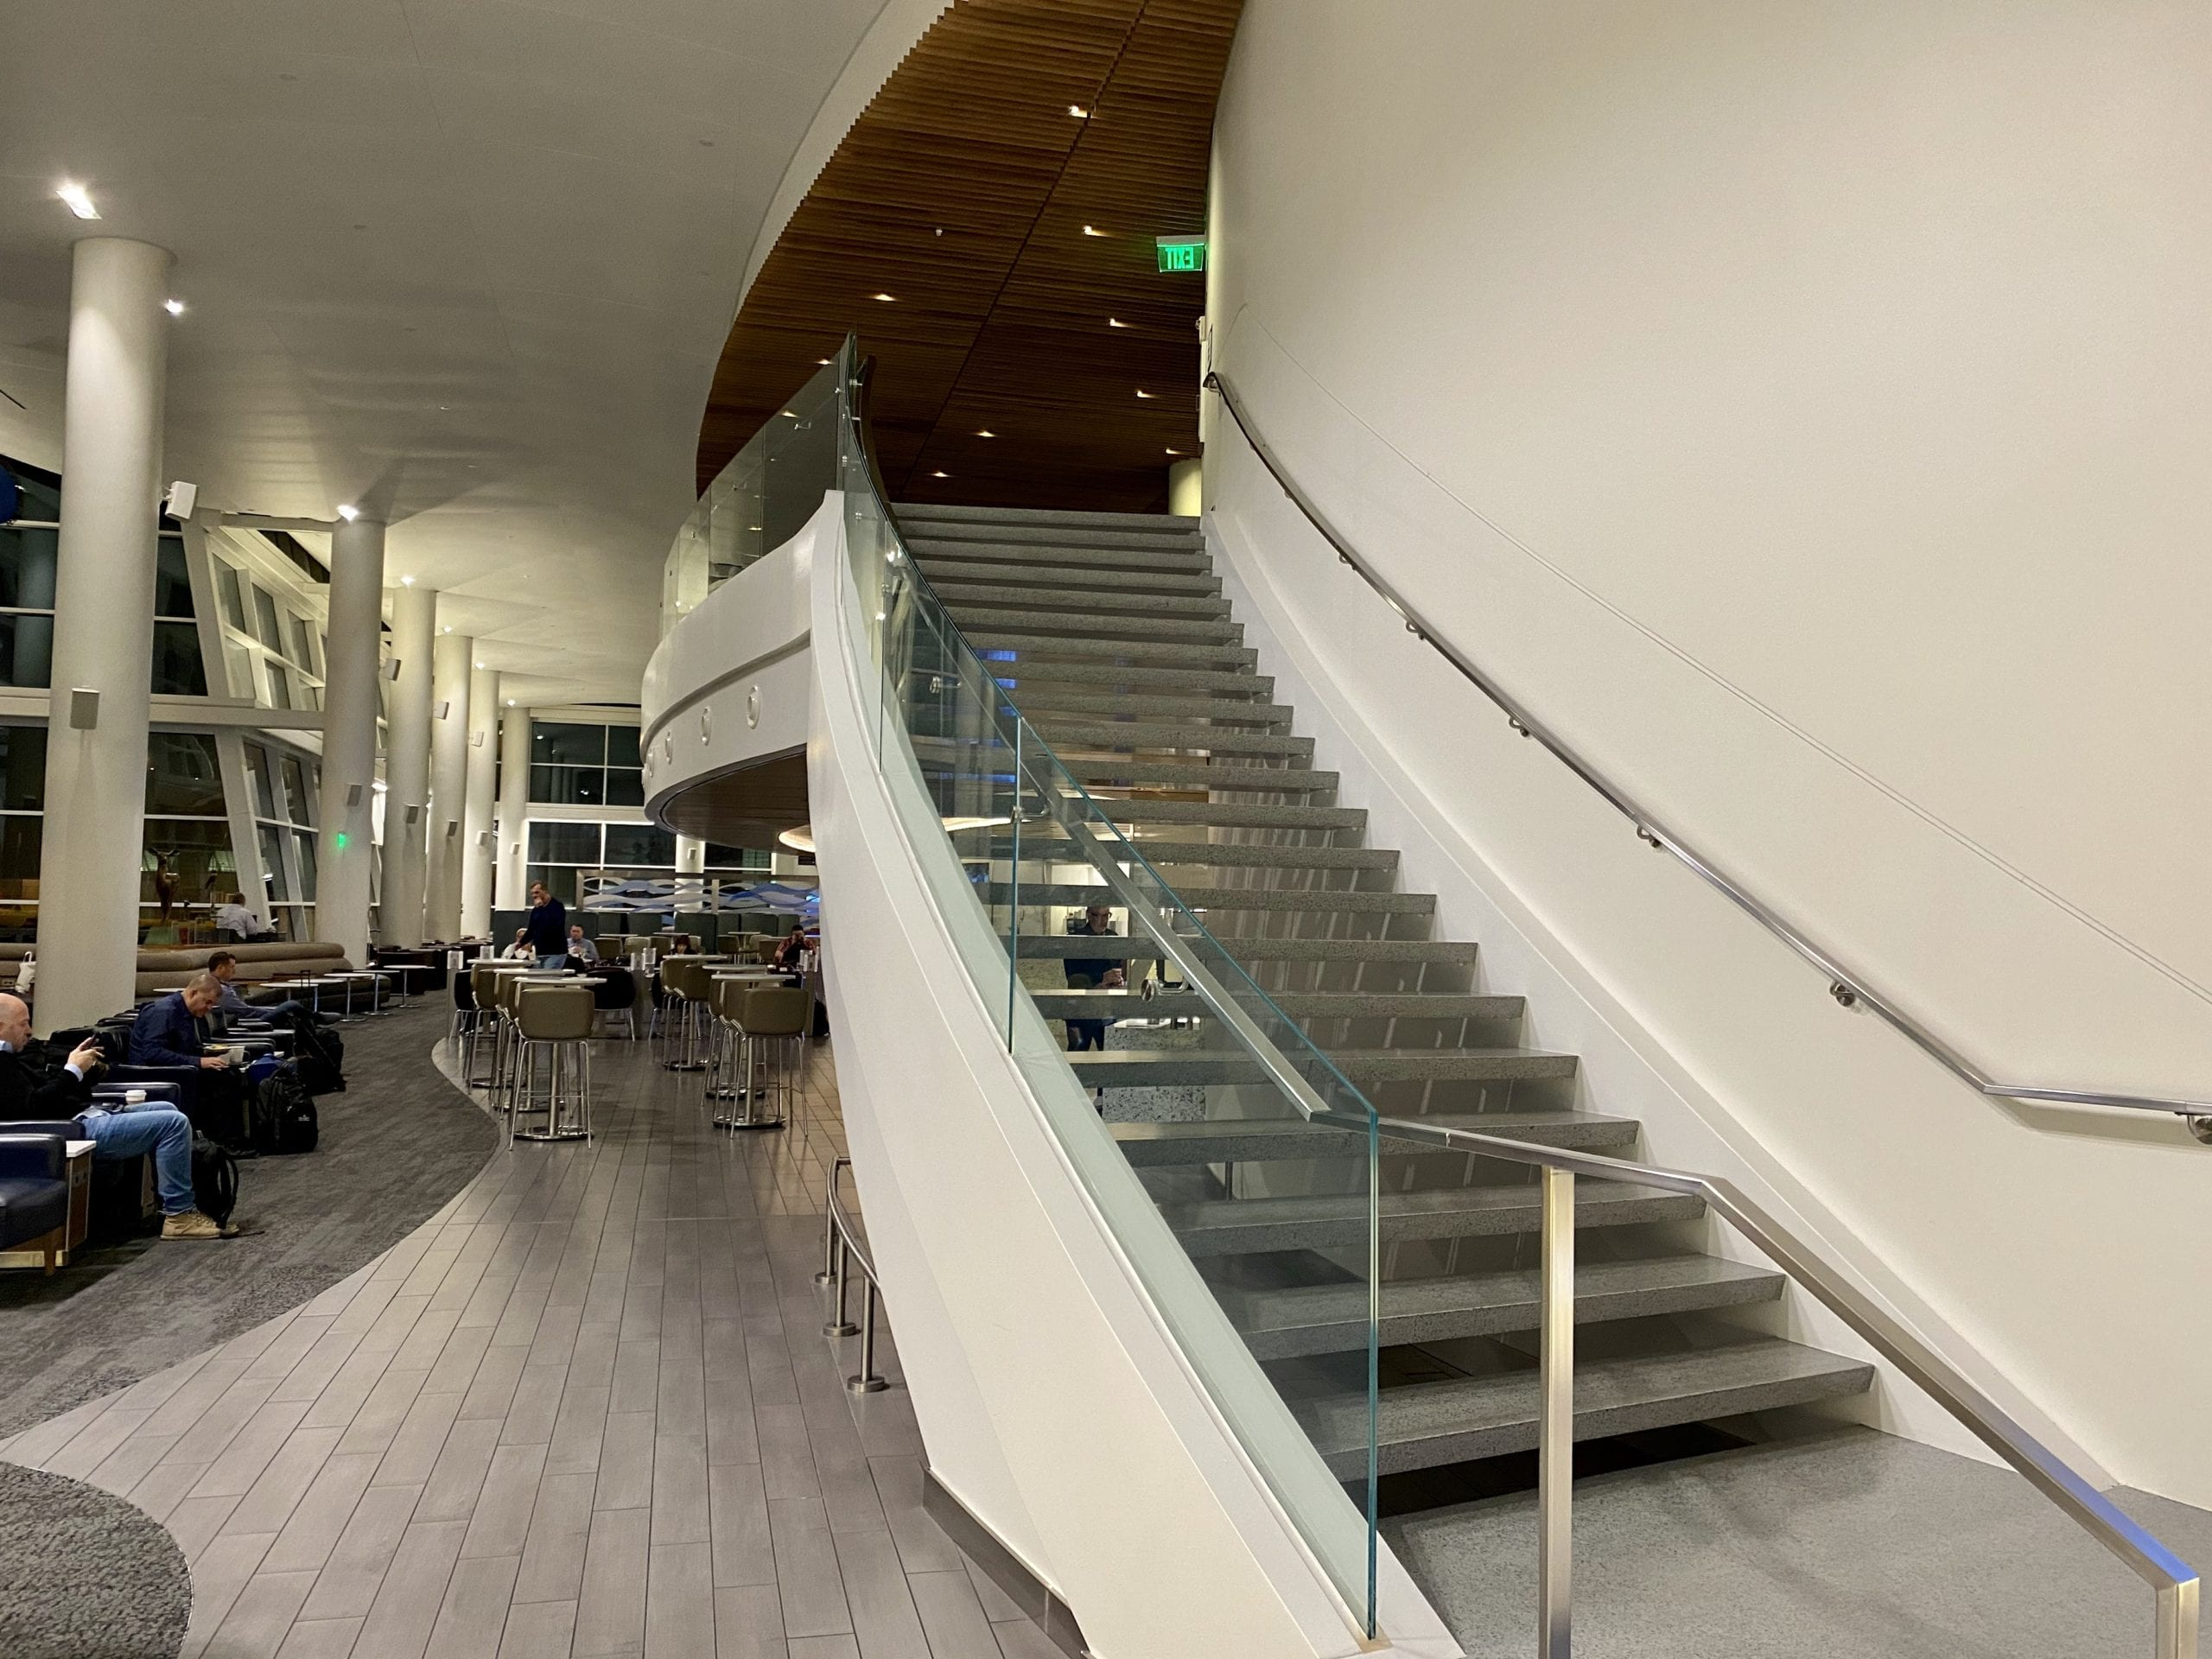 stairs delta sky club seattle